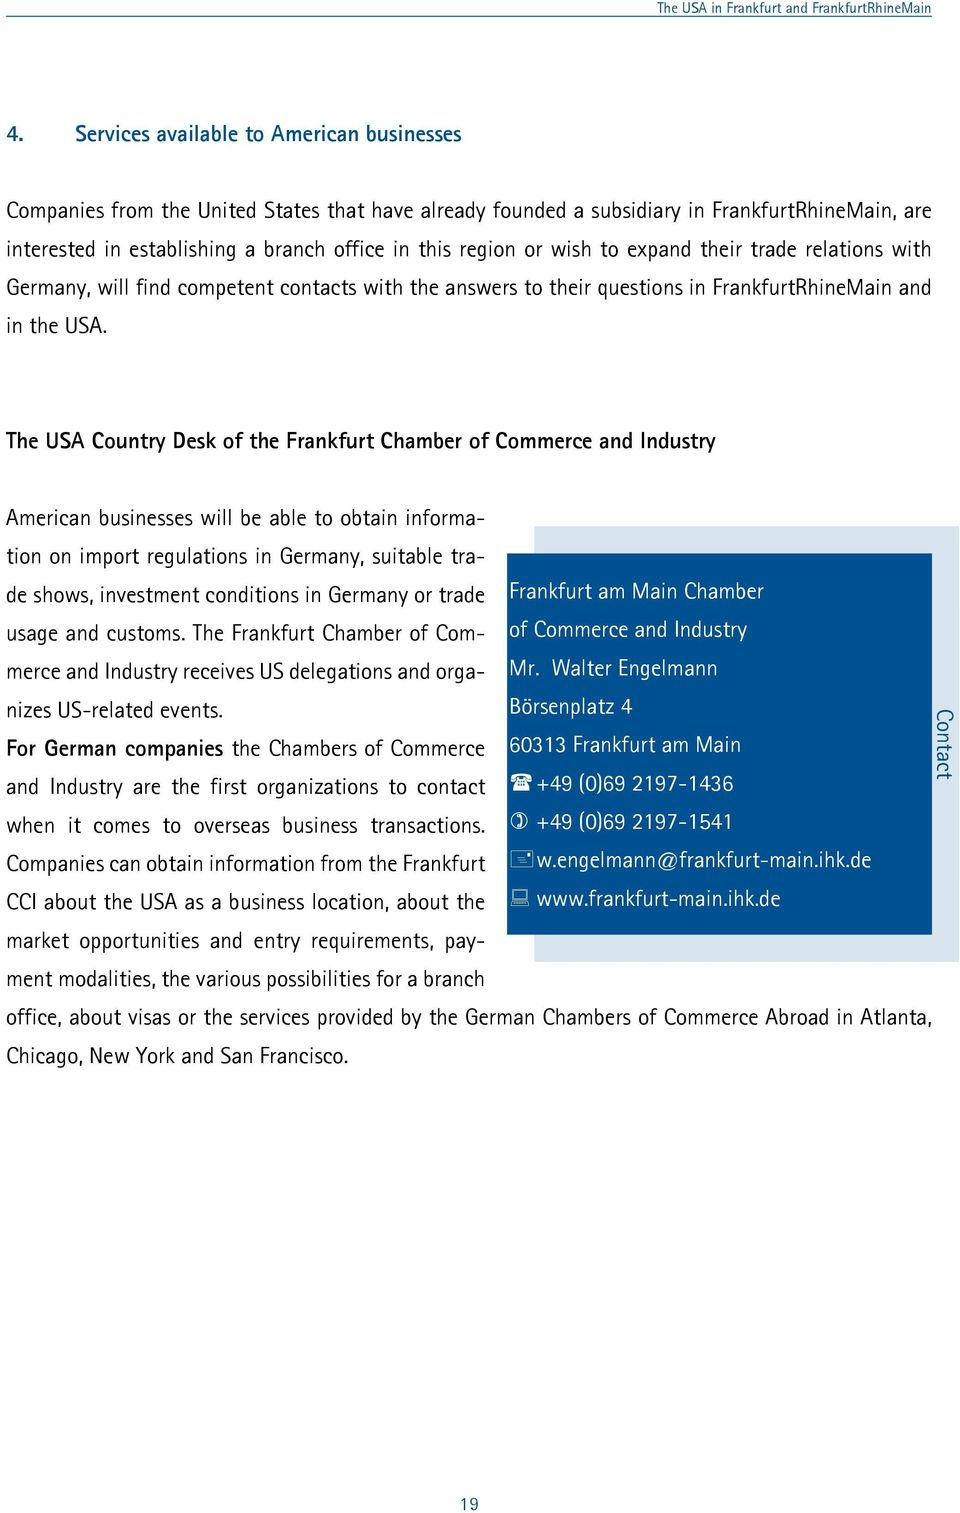 The USA Country Desk of the Frankfurt Chamber of Commerce and Industry American businesses will be able to obtain information on import regulations in Germany, suitable trade shows, investment